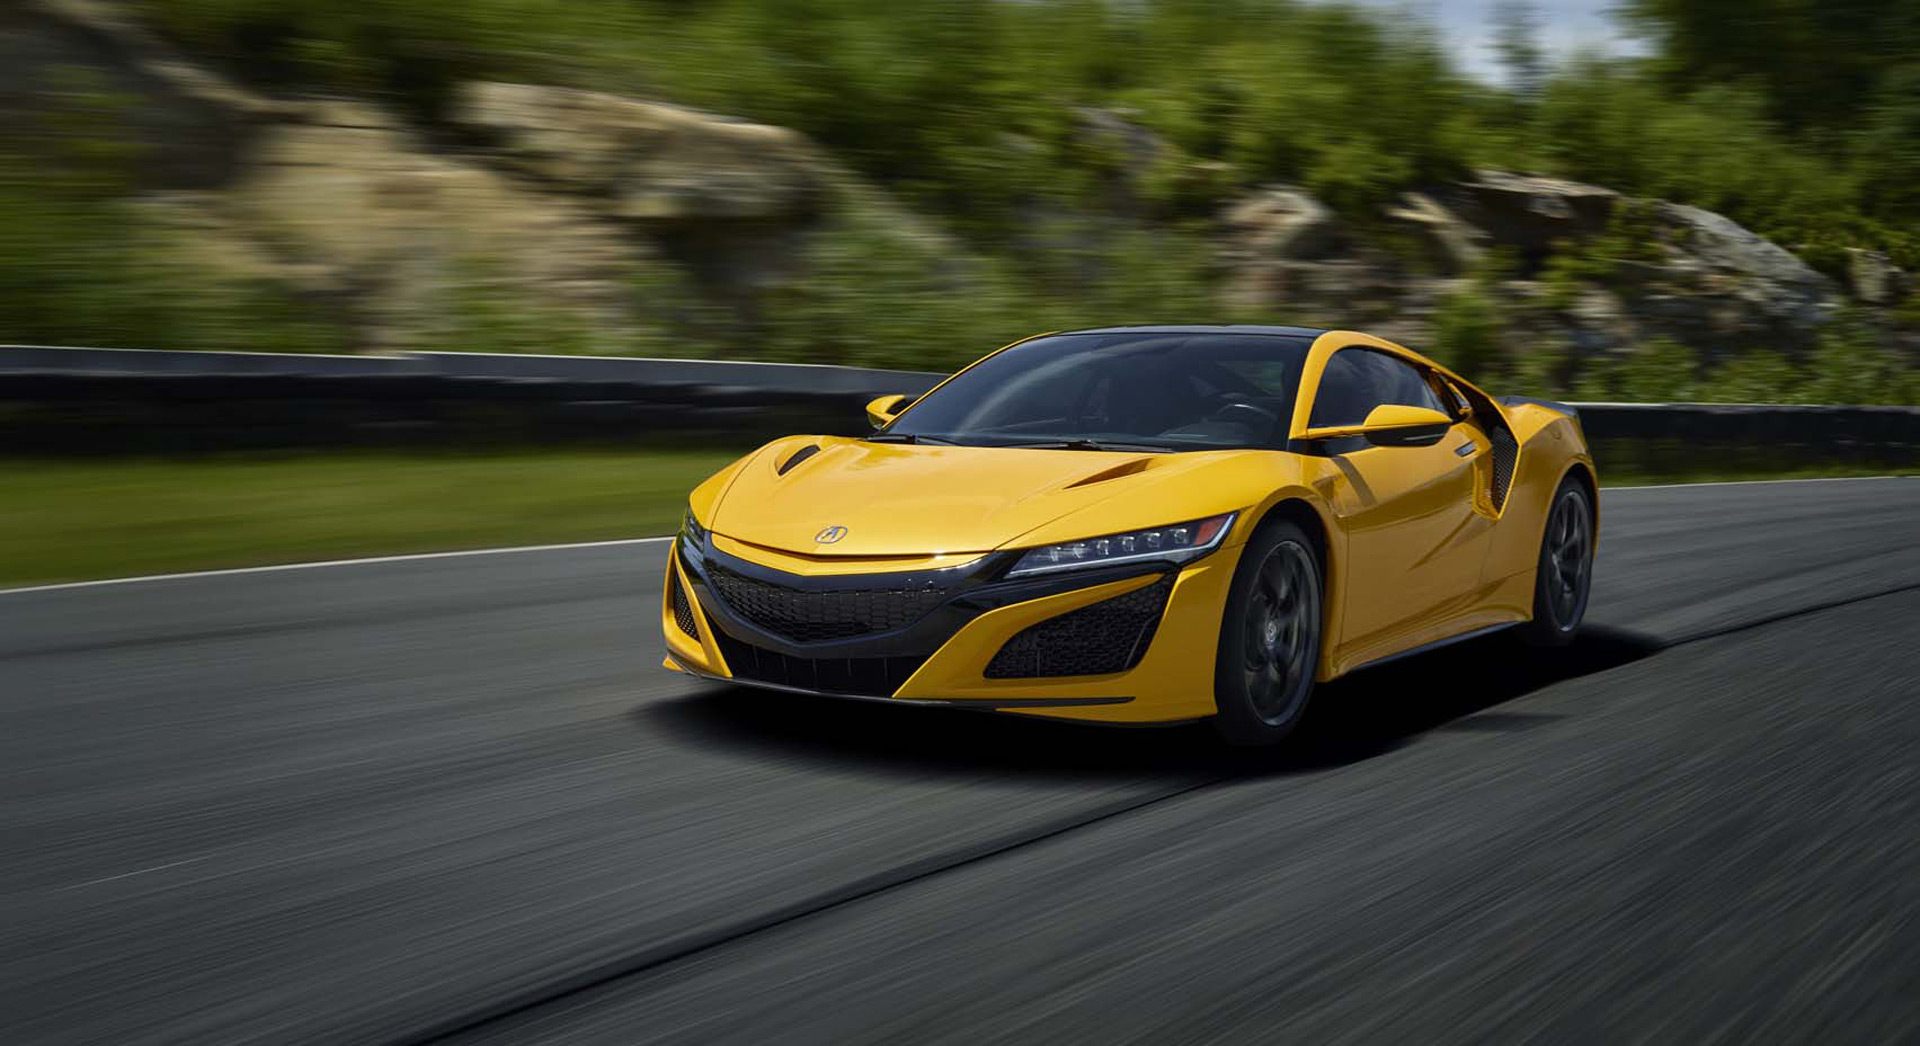 New And Used Acura Nsx Prices Photos Reviews Specs The Car Connection